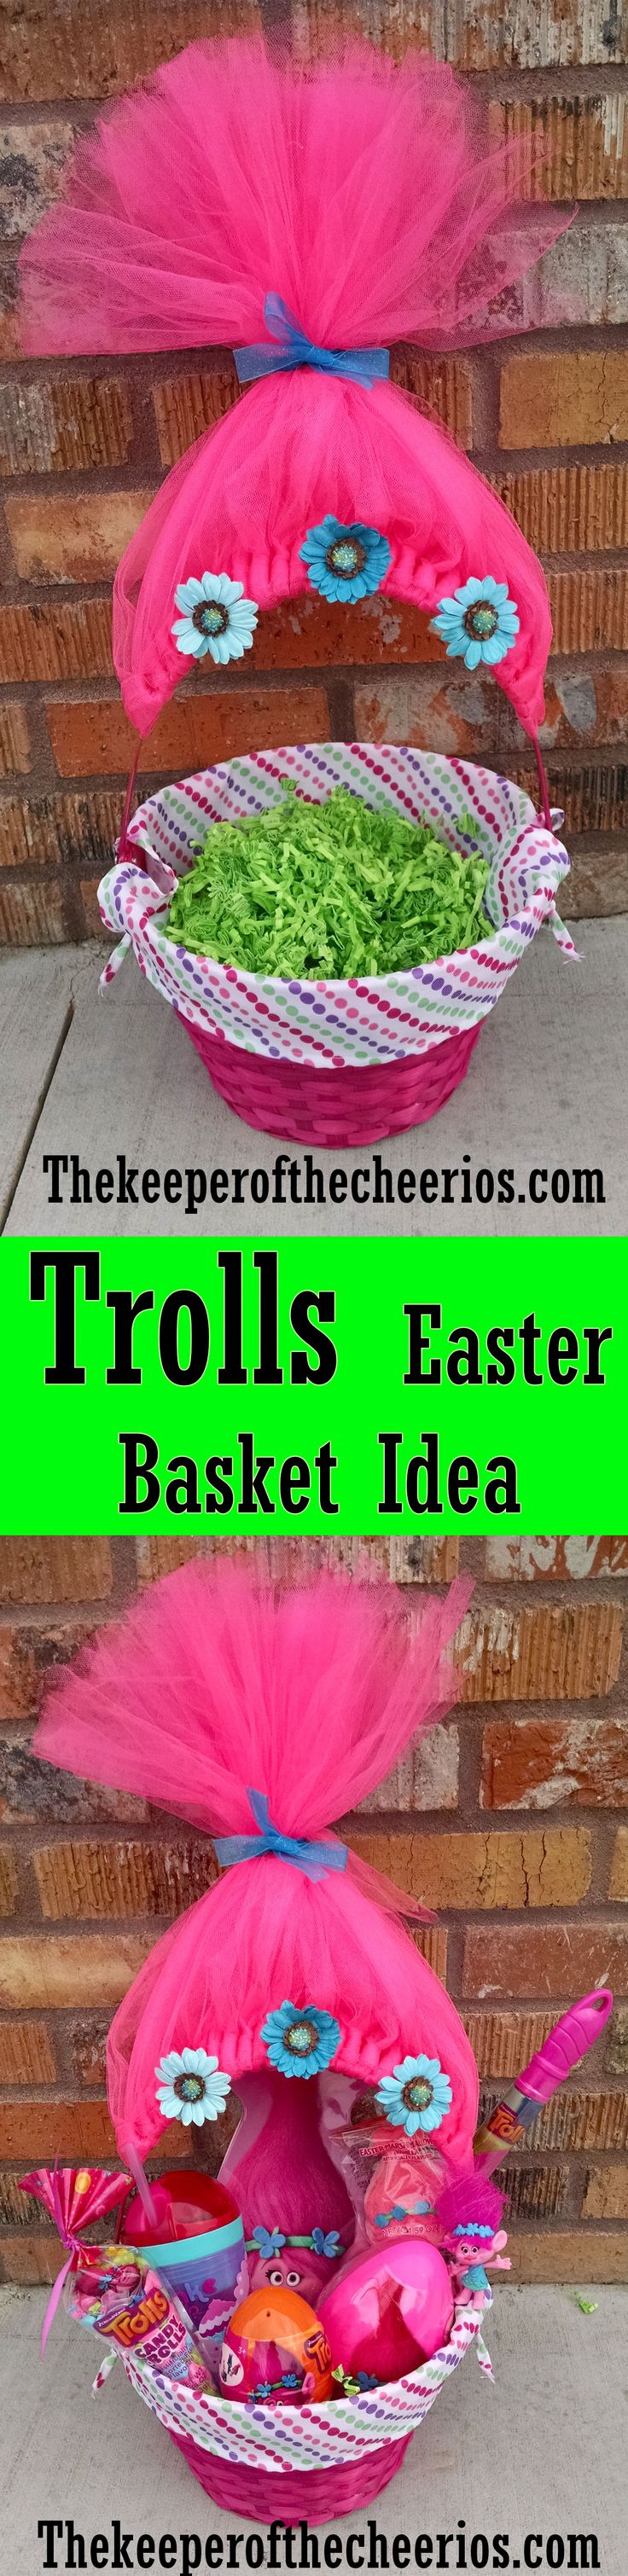 Best 25 easter baskets ideas on pinterest easter easter trolls movie easter basket idea negle Image collections